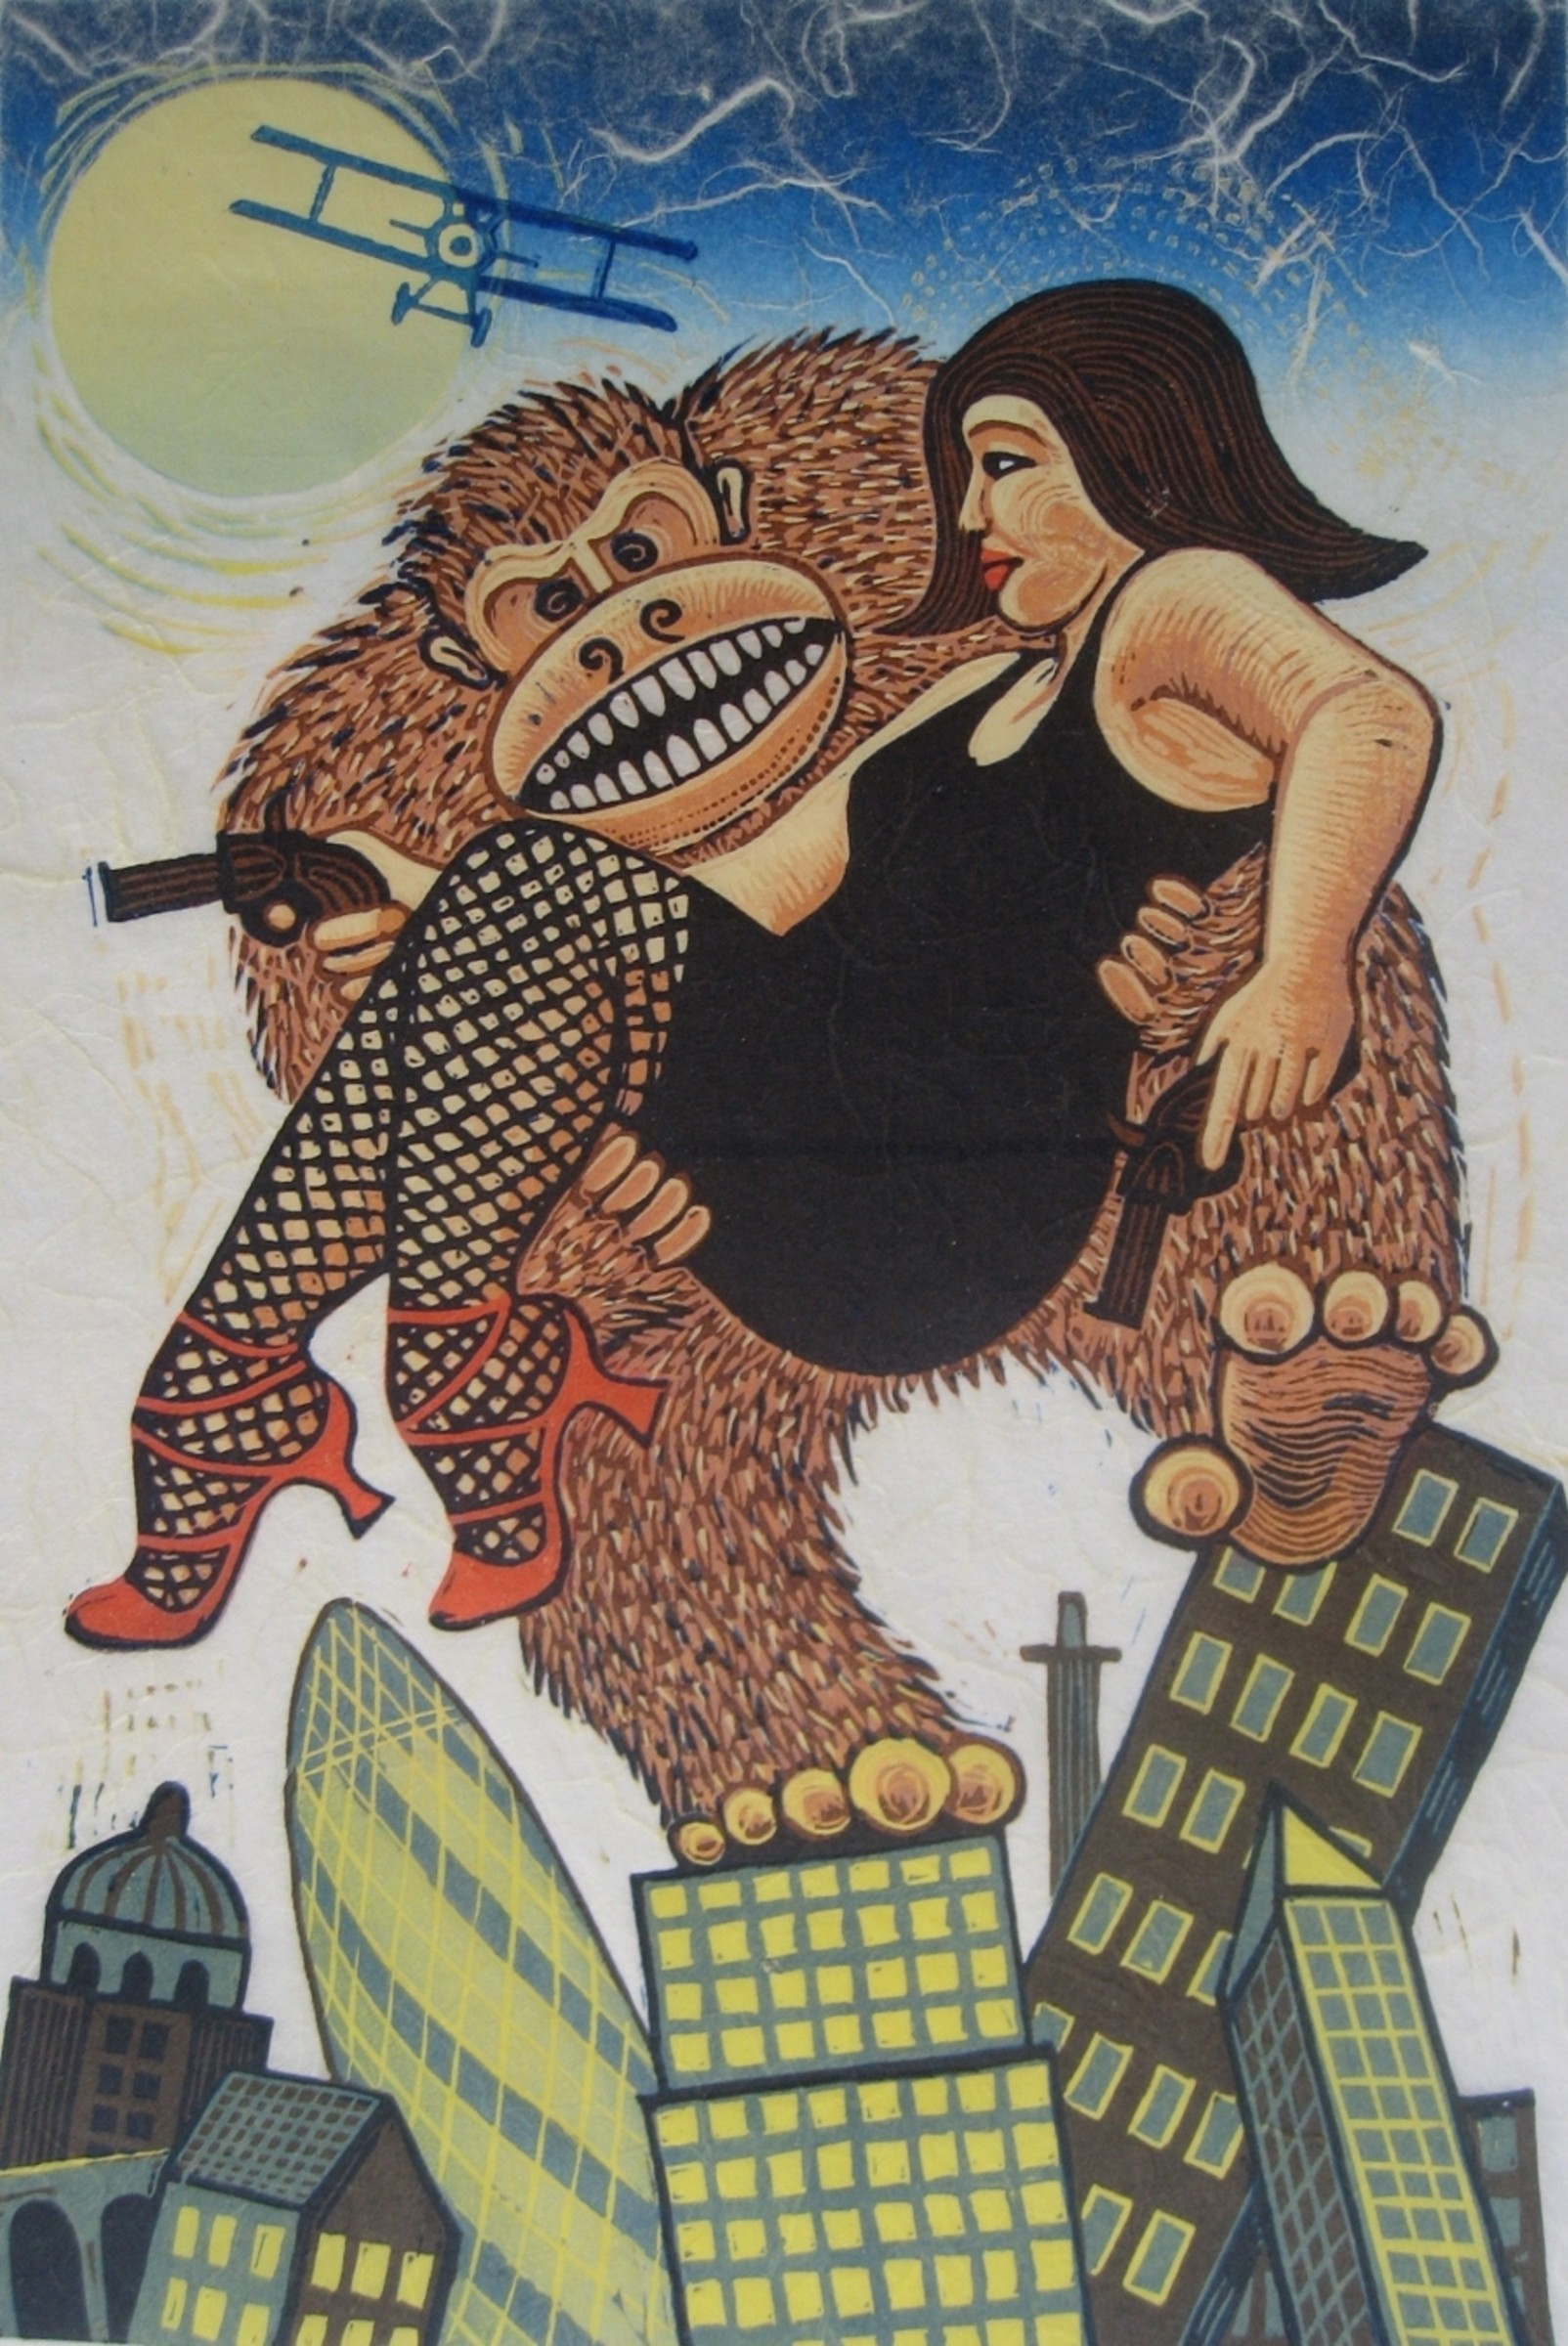 """<span class=""""link fancybox-details-link""""><a href=""""/exhibitions/18/works/image_standalone954/"""">View Detail Page</a></span><p>Jim Anderson RE</p><p>Mr and Mrs Kong Out on the Town</p><p>linocut</p><p>54 x 44cm</p><p>£300 framed</p><p>£200 unframed</p>"""